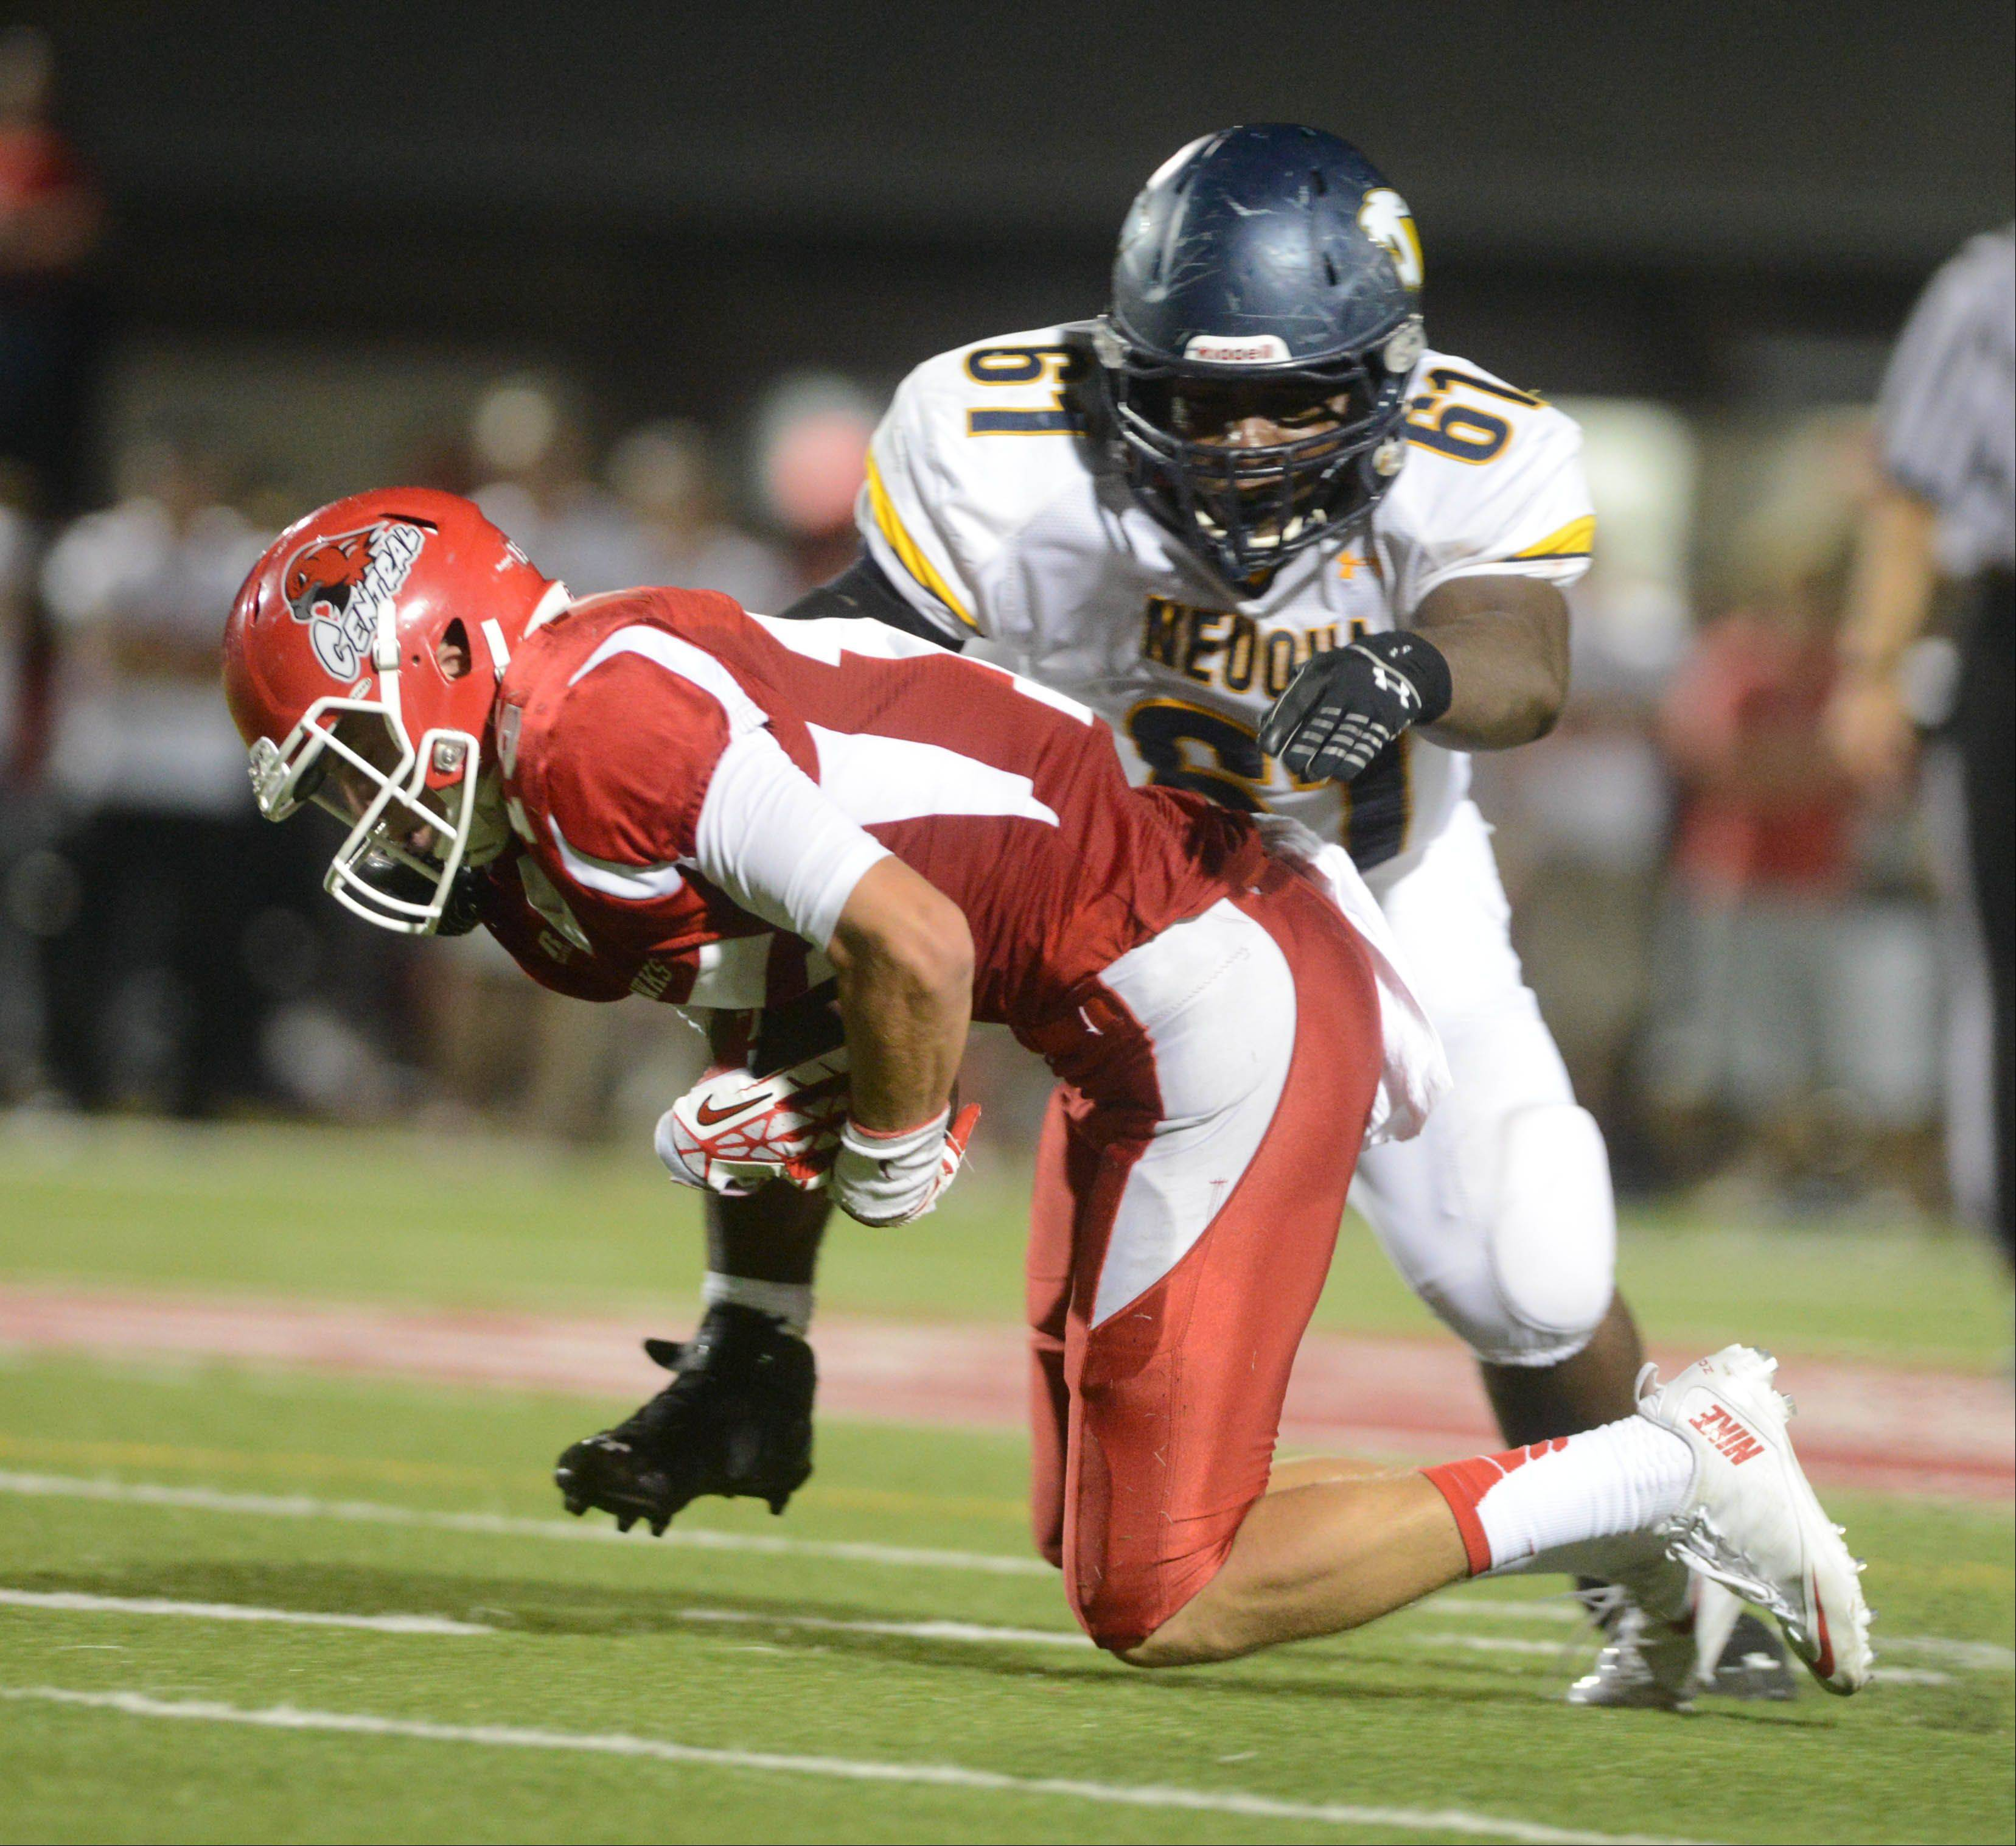 Michael Kolzow of Naperville central,left, is pulled down by Godfrey Collins of Neuqua Valley.